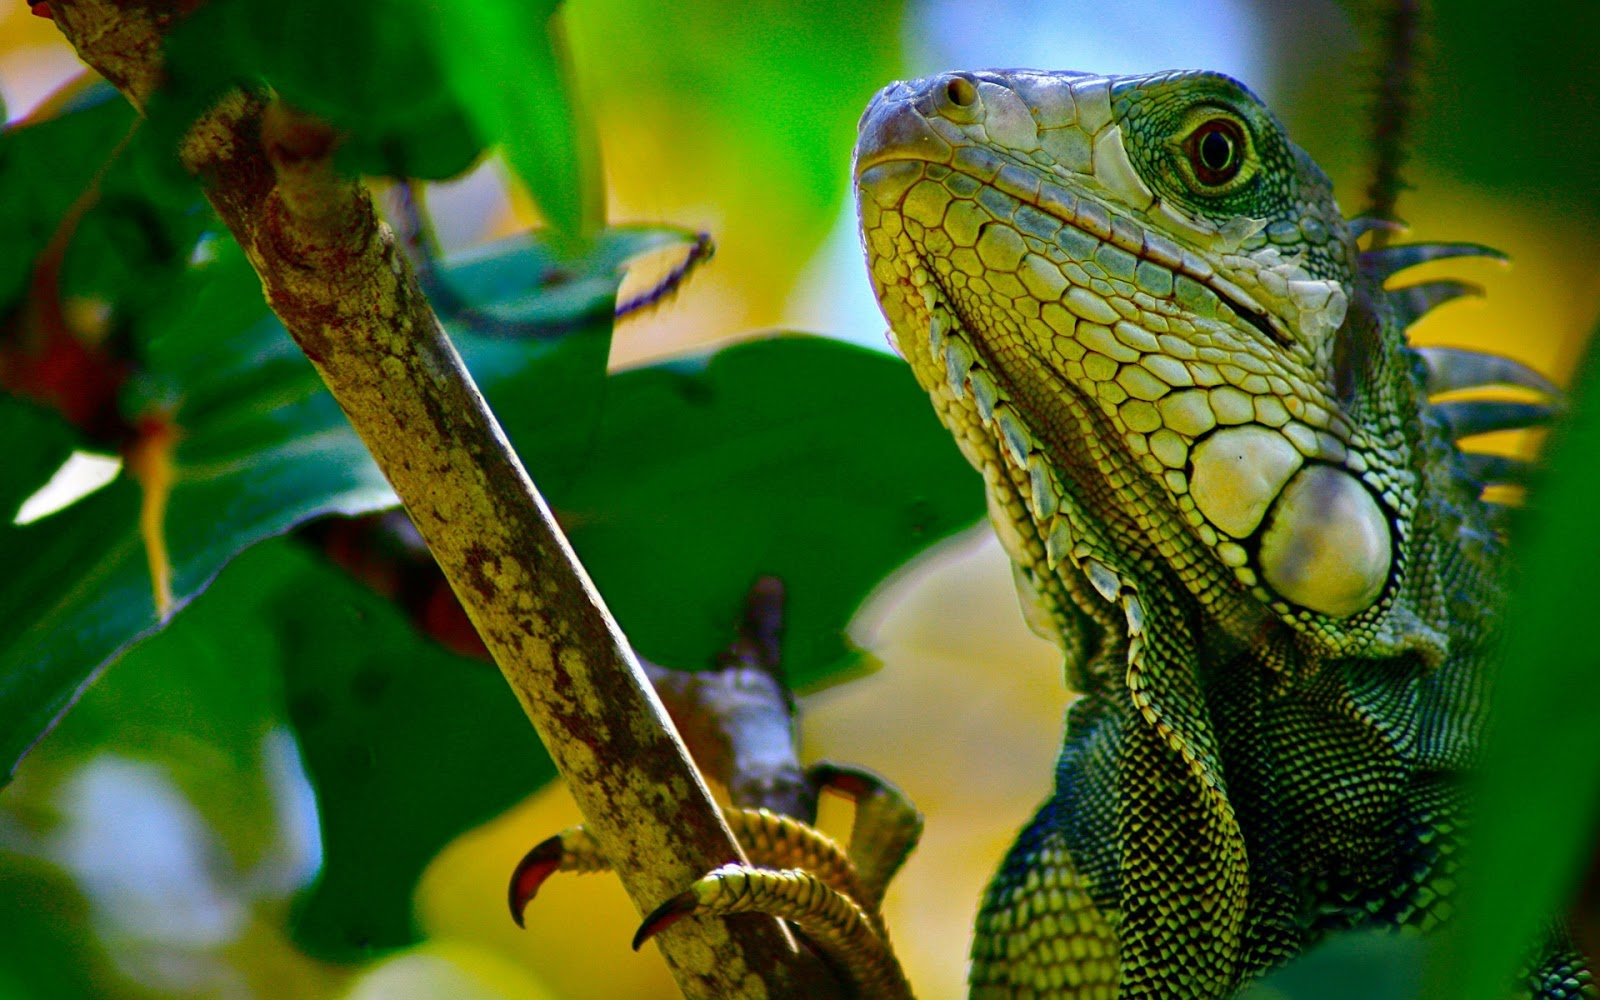 22 reptile hd wallpapers - photo #2